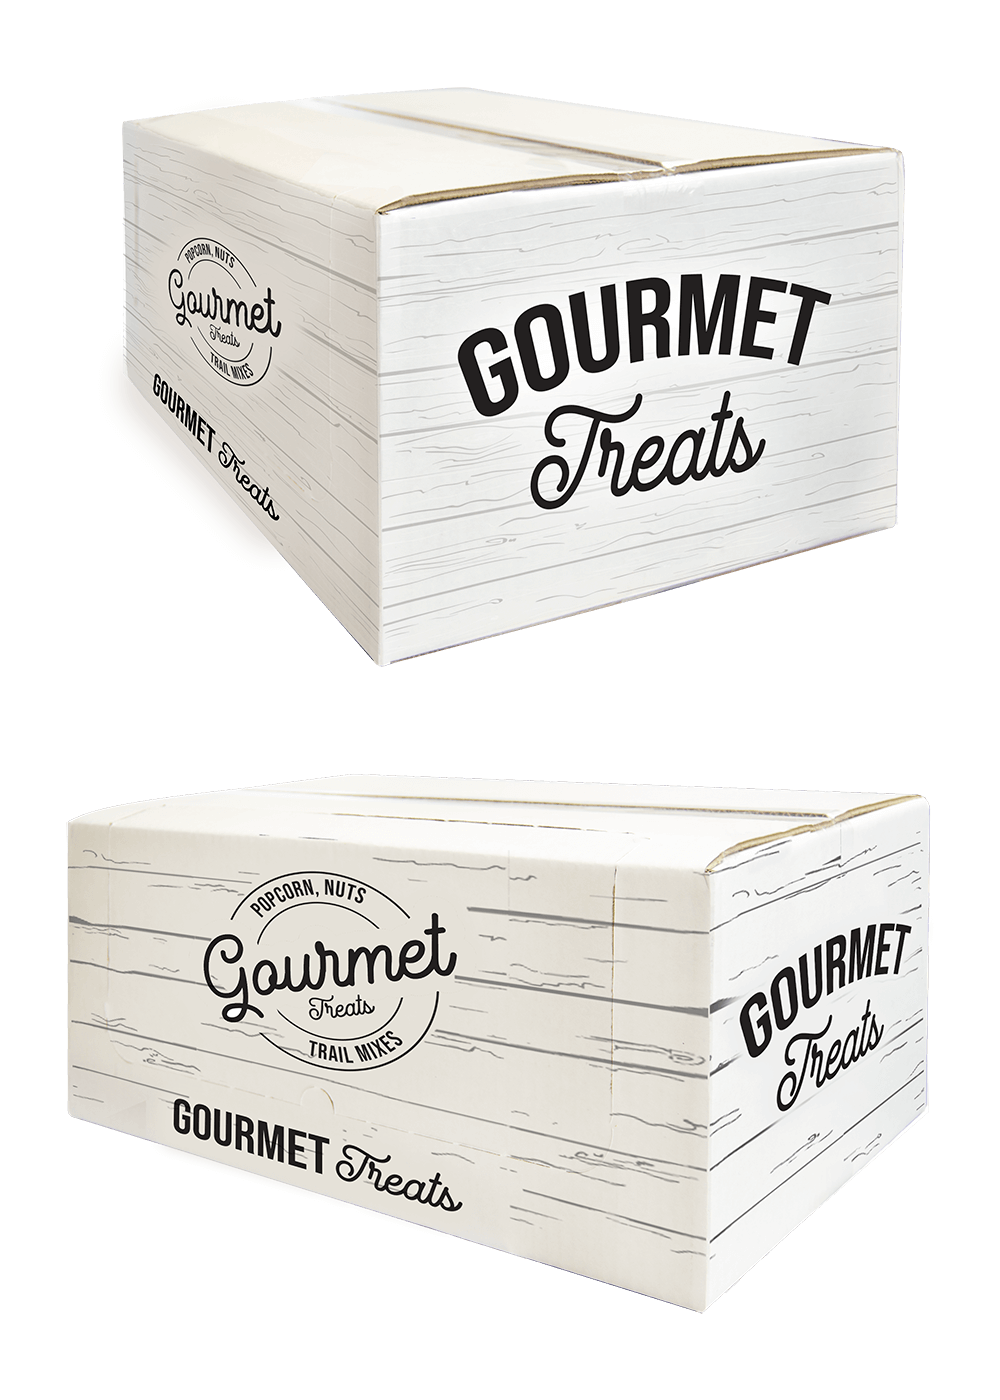 Our unopened gourmet popcorn shipper boxes